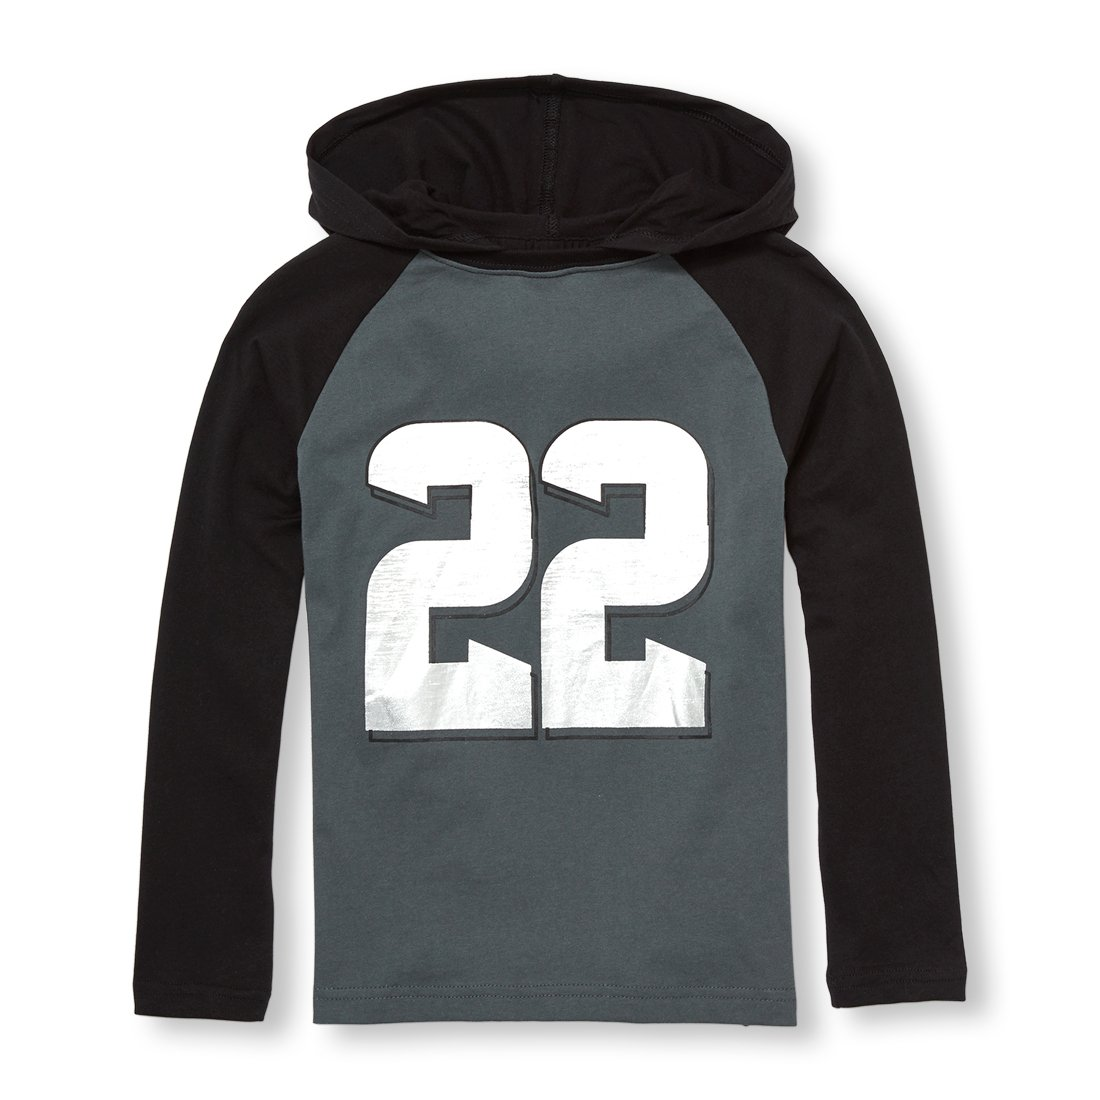 The Children's Place Big Boys' Long Sleeve Hooded T-Shirt, Gray Steel 5626, L (10/12)